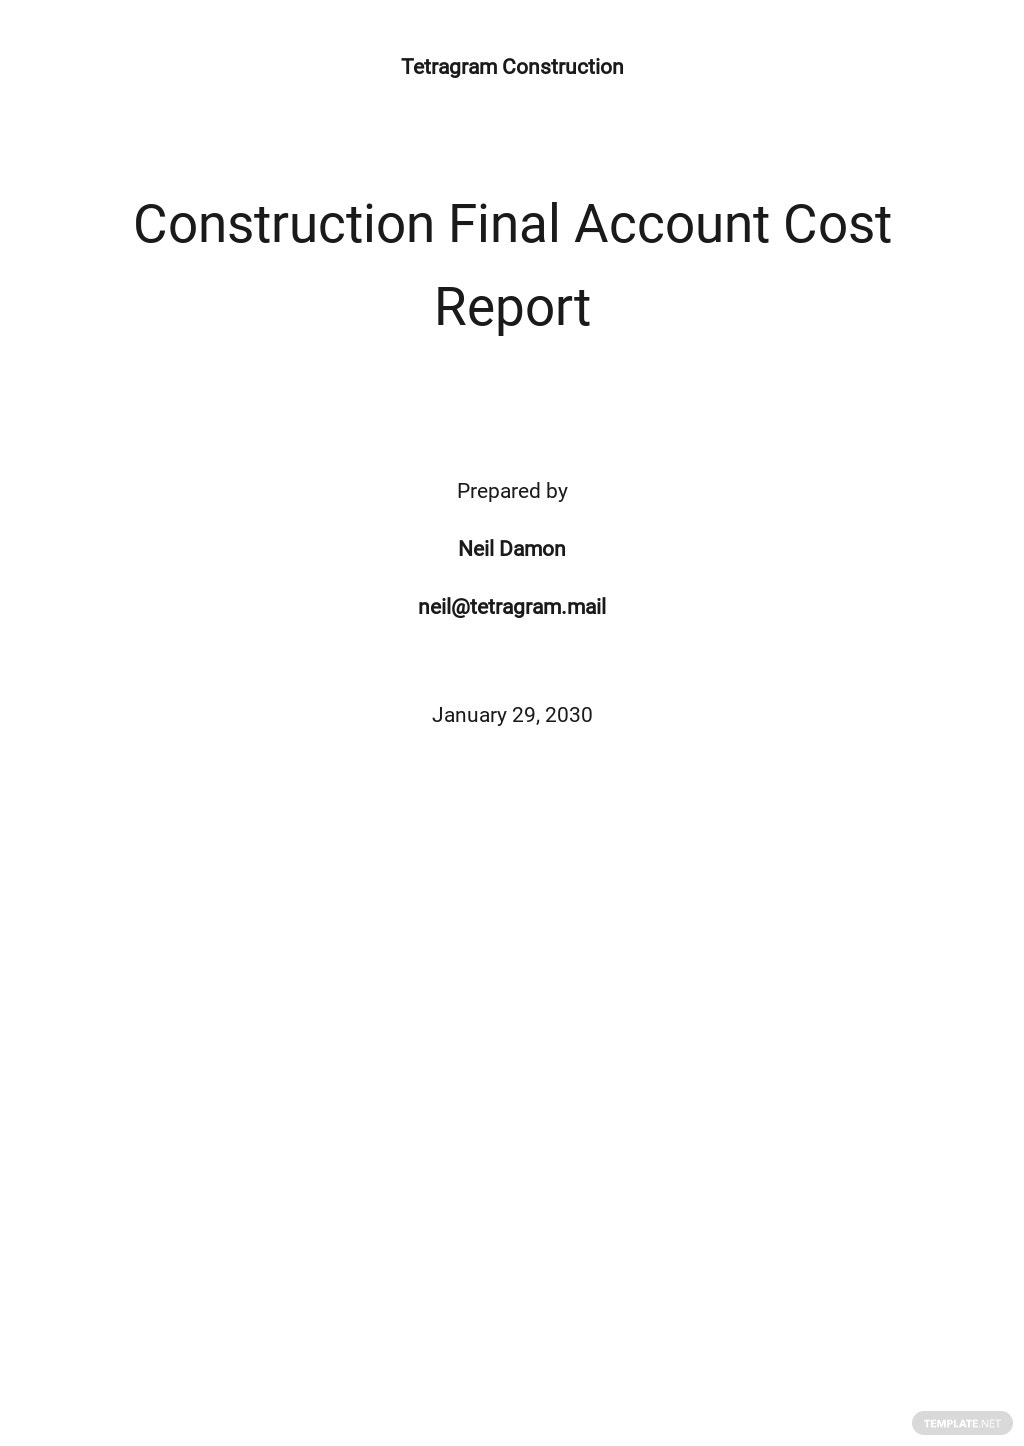 Construction Final Account Cost Report Template